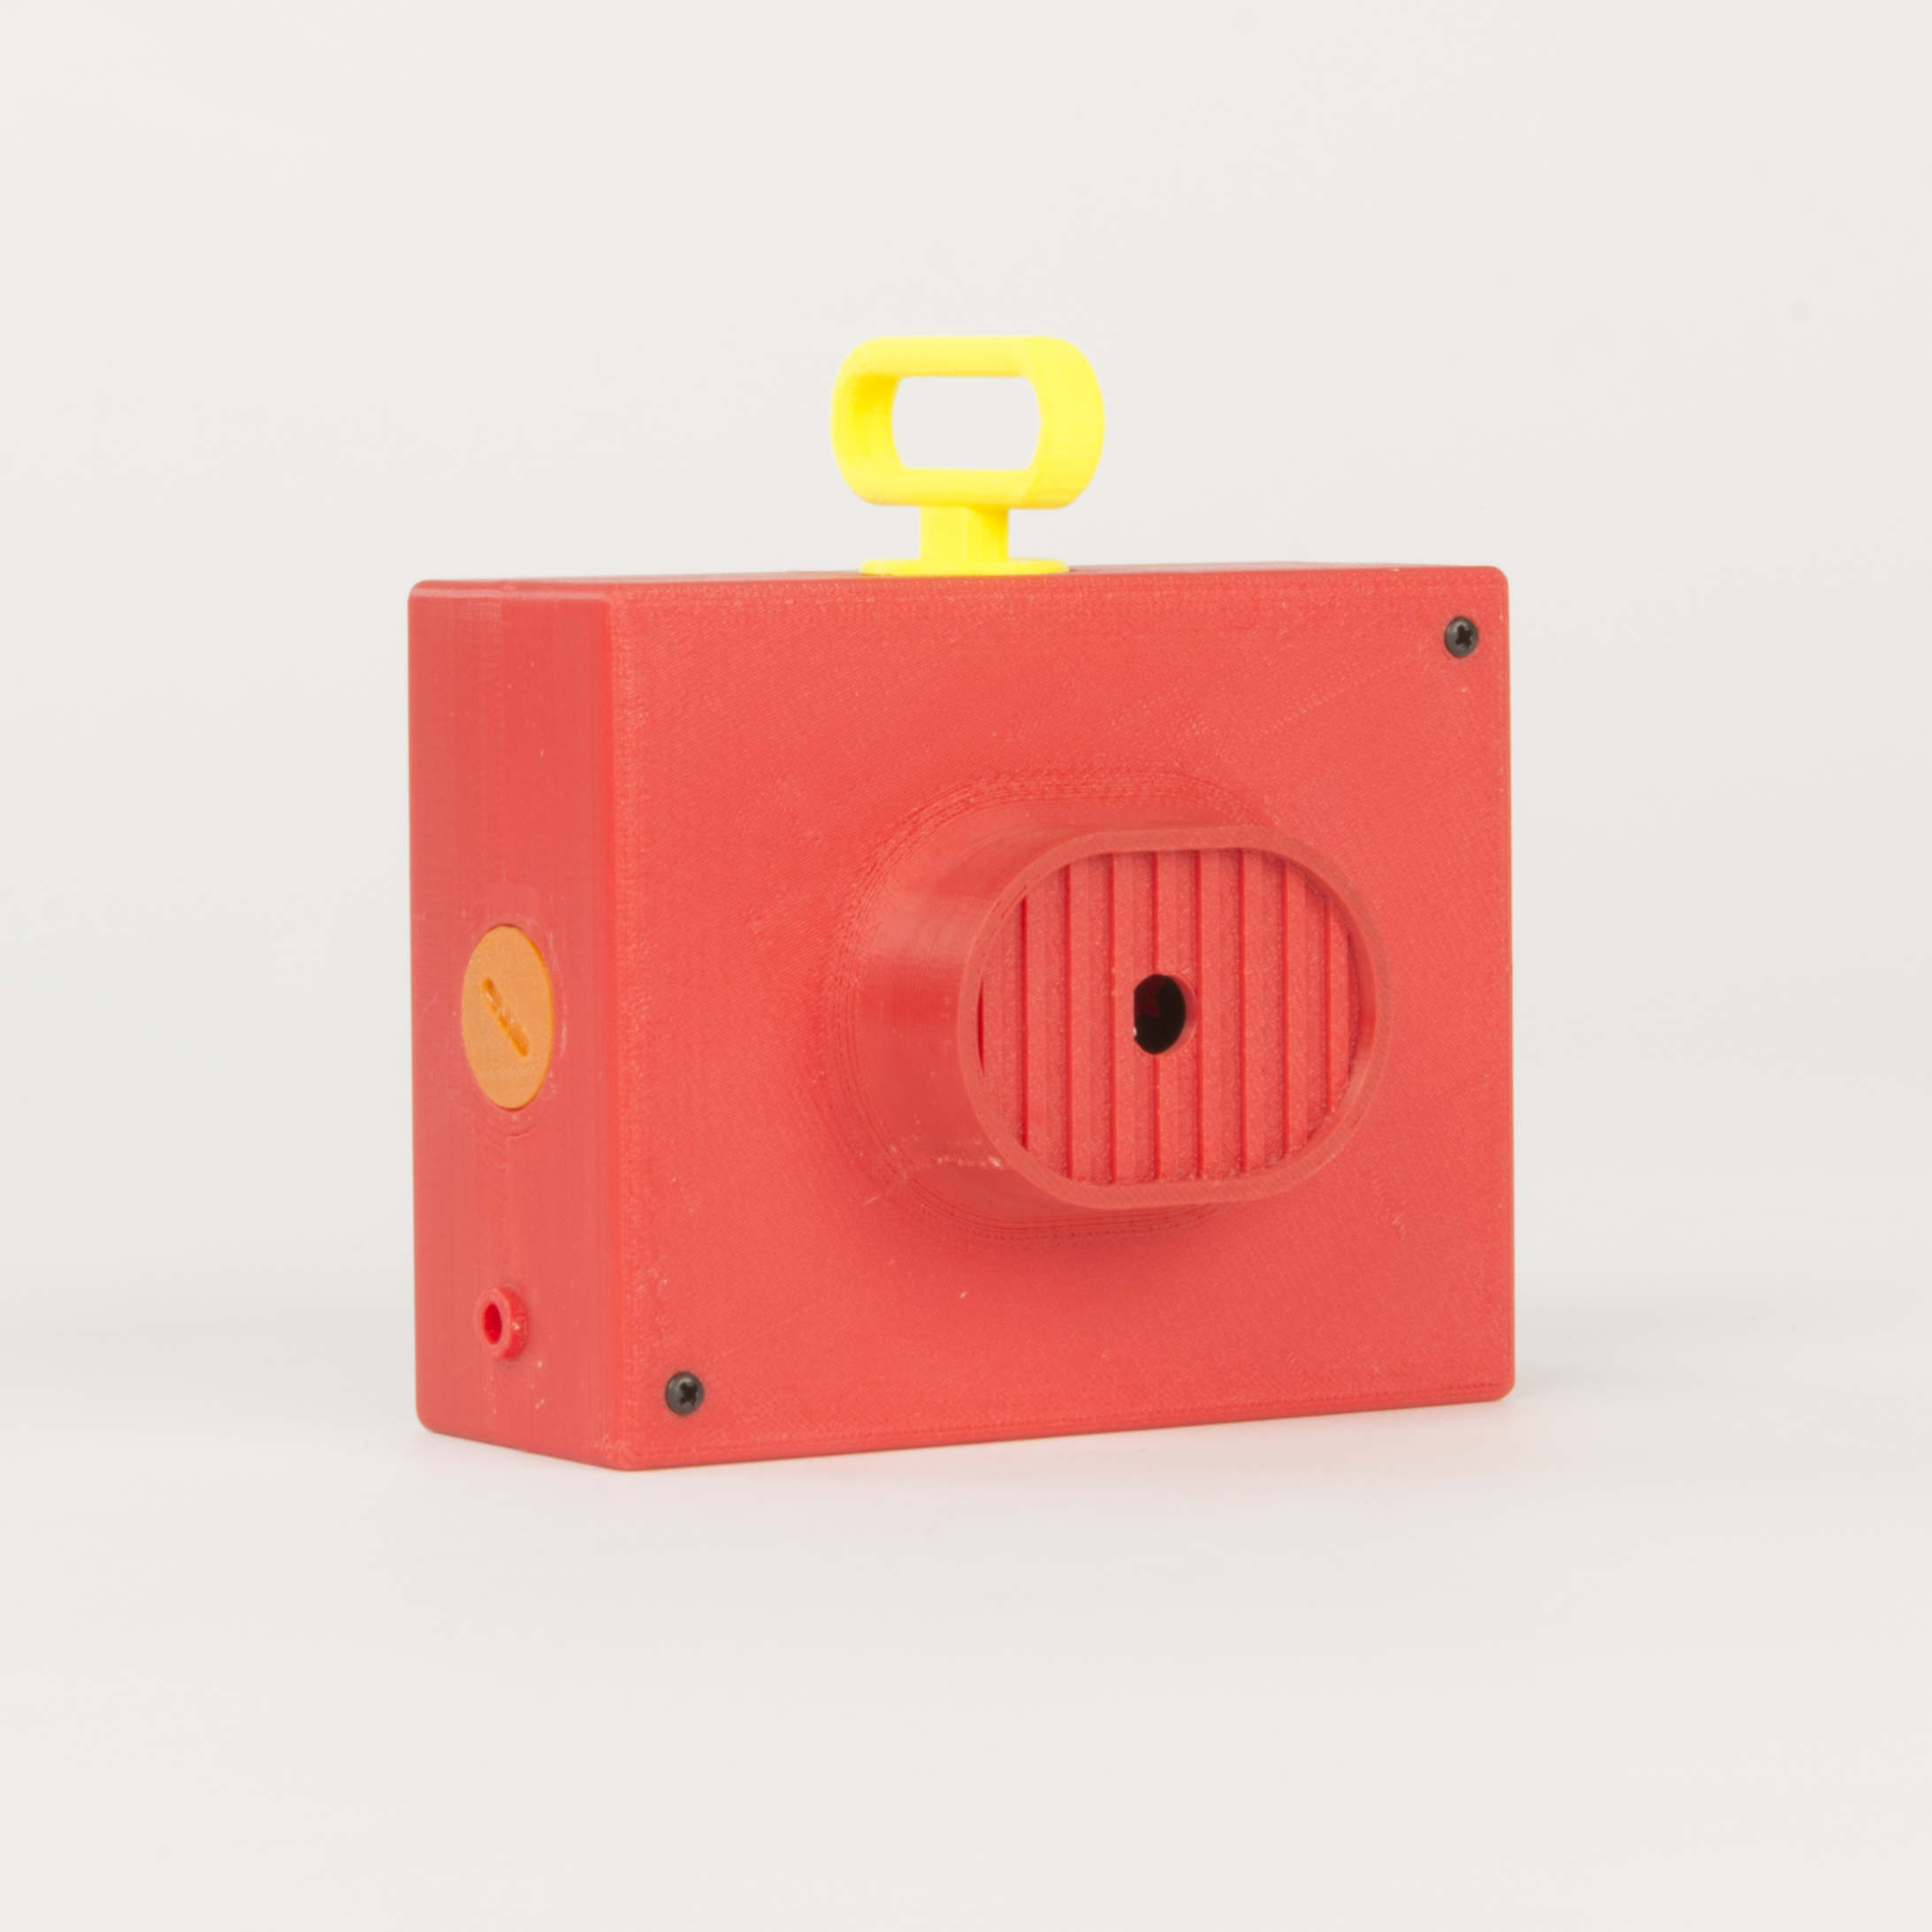 Extruded Lens Camera    Structurally similar to the Threaded Case Camera, this housing makes a feature on the lens body and has four threaded sockets that allow a number of accessories to be attached.  more